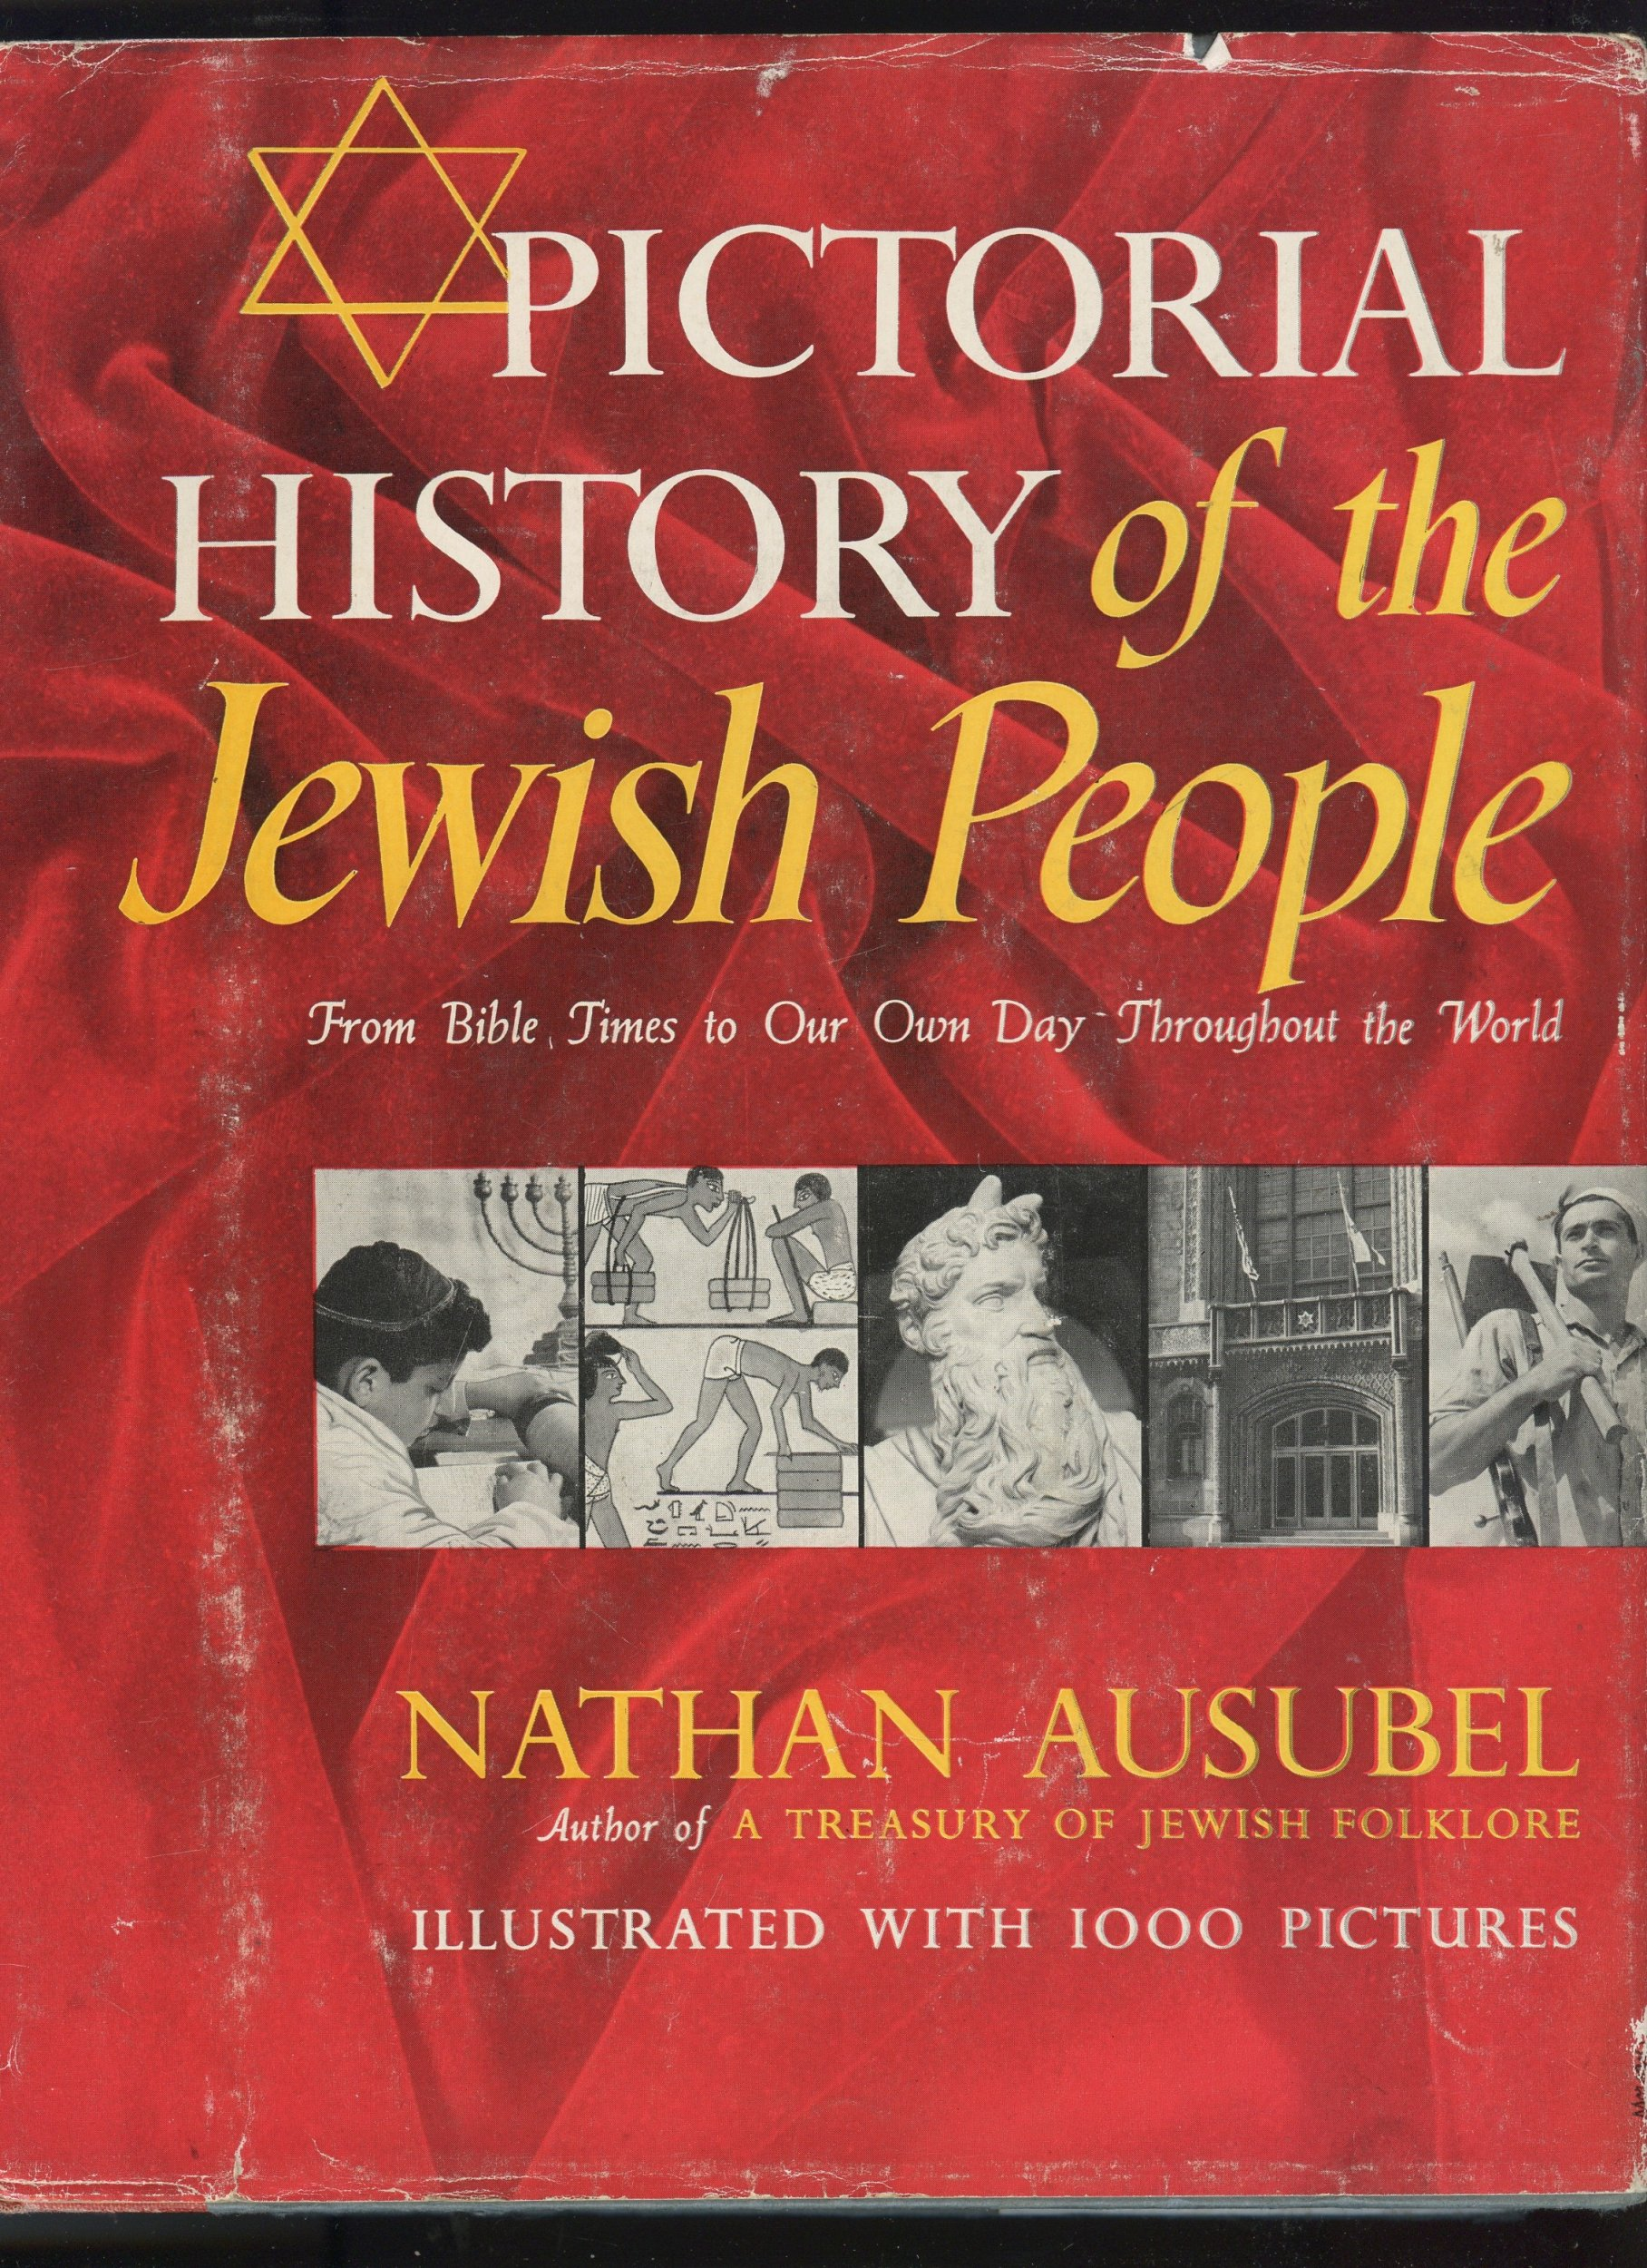 Pictorial History of the Jewish People, From Bible Times to Our Own Day Throughout the World (Illustrated with 1000 Pictures)